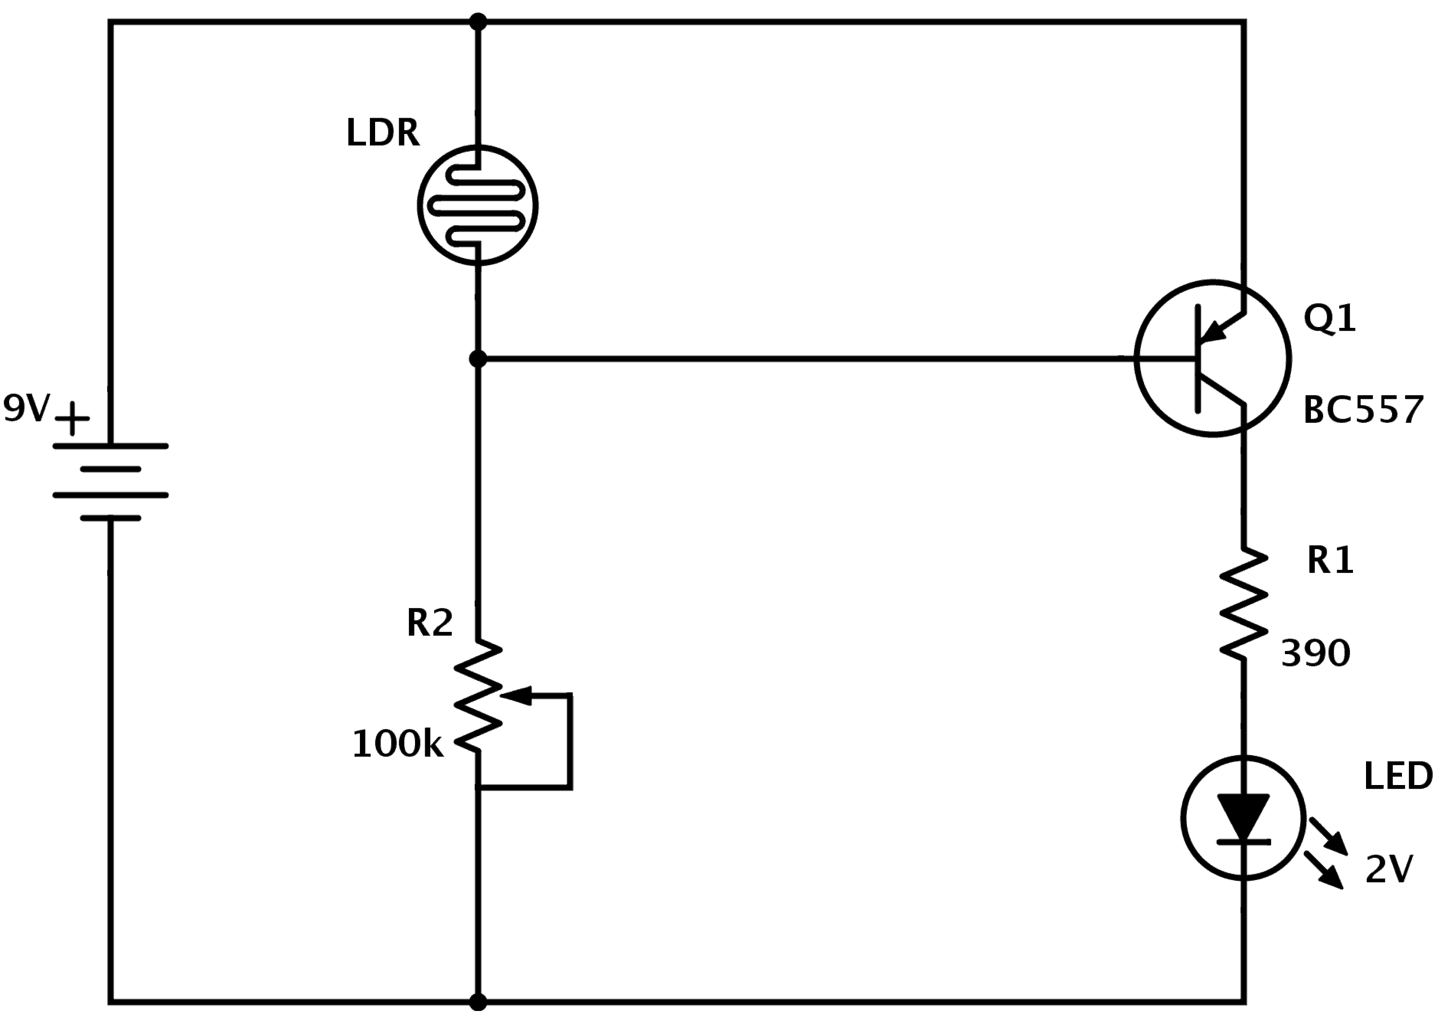 Ldr Circuit Diagram Build Electronic Circuits Wizard Standard Edition Simulation Menu Window Of With Pnp Transistor Dark Detector